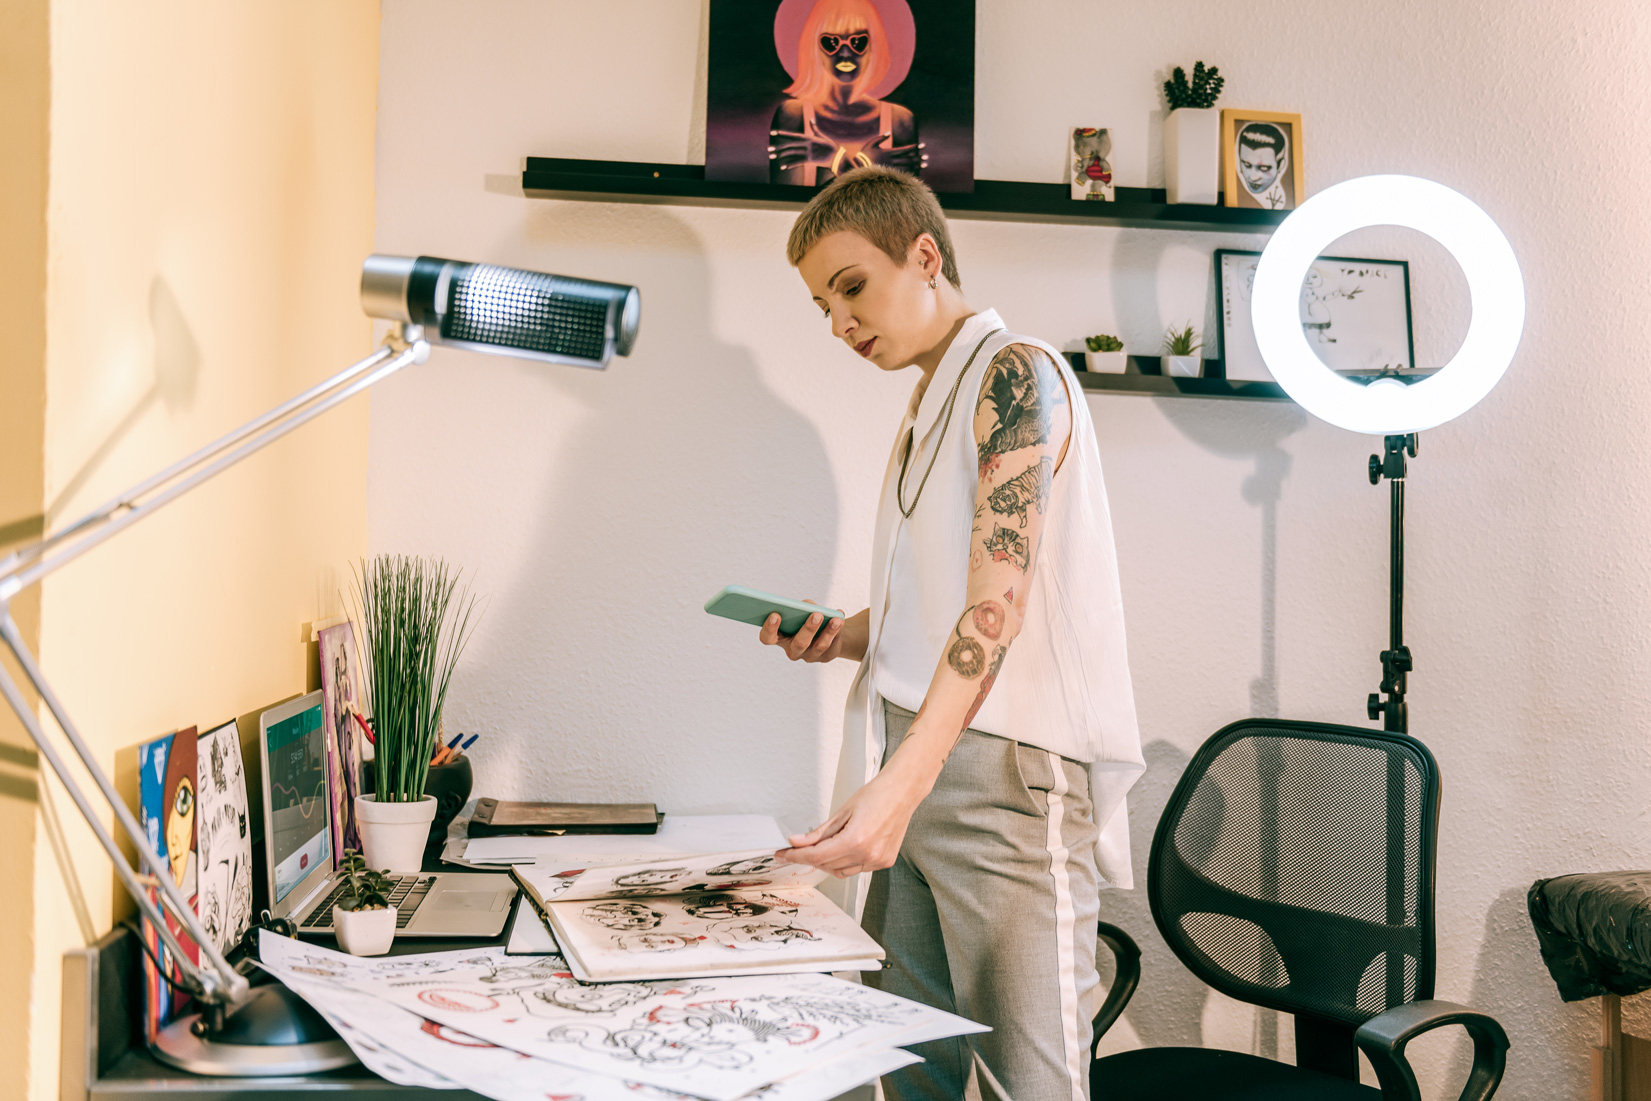 A woman having a tattoo is working in her office.